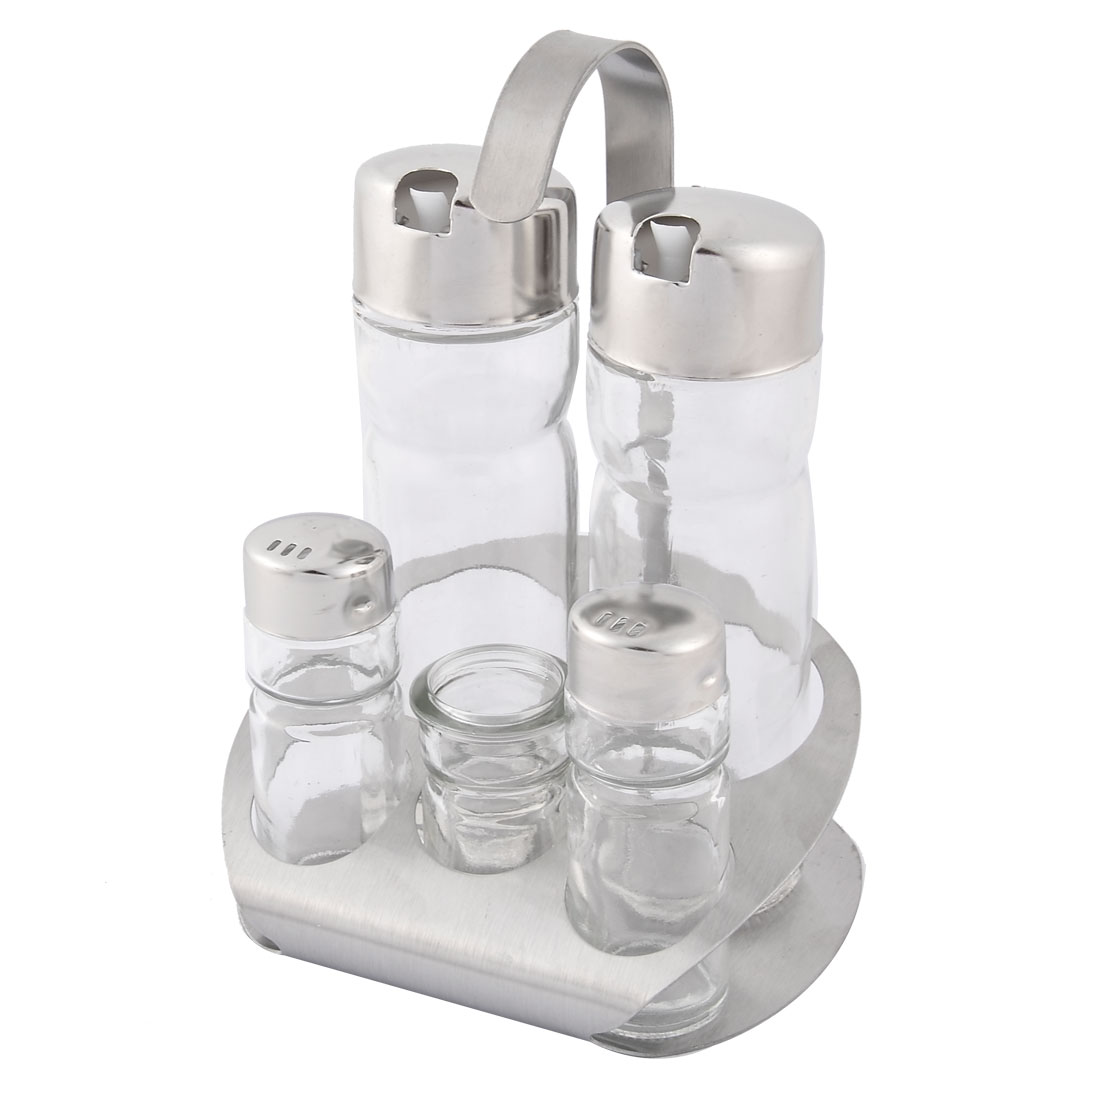 Home Kitchen Metal Lid Glass Salt Spice Pepper Sugar Condiment Bottle Set 5 in 1